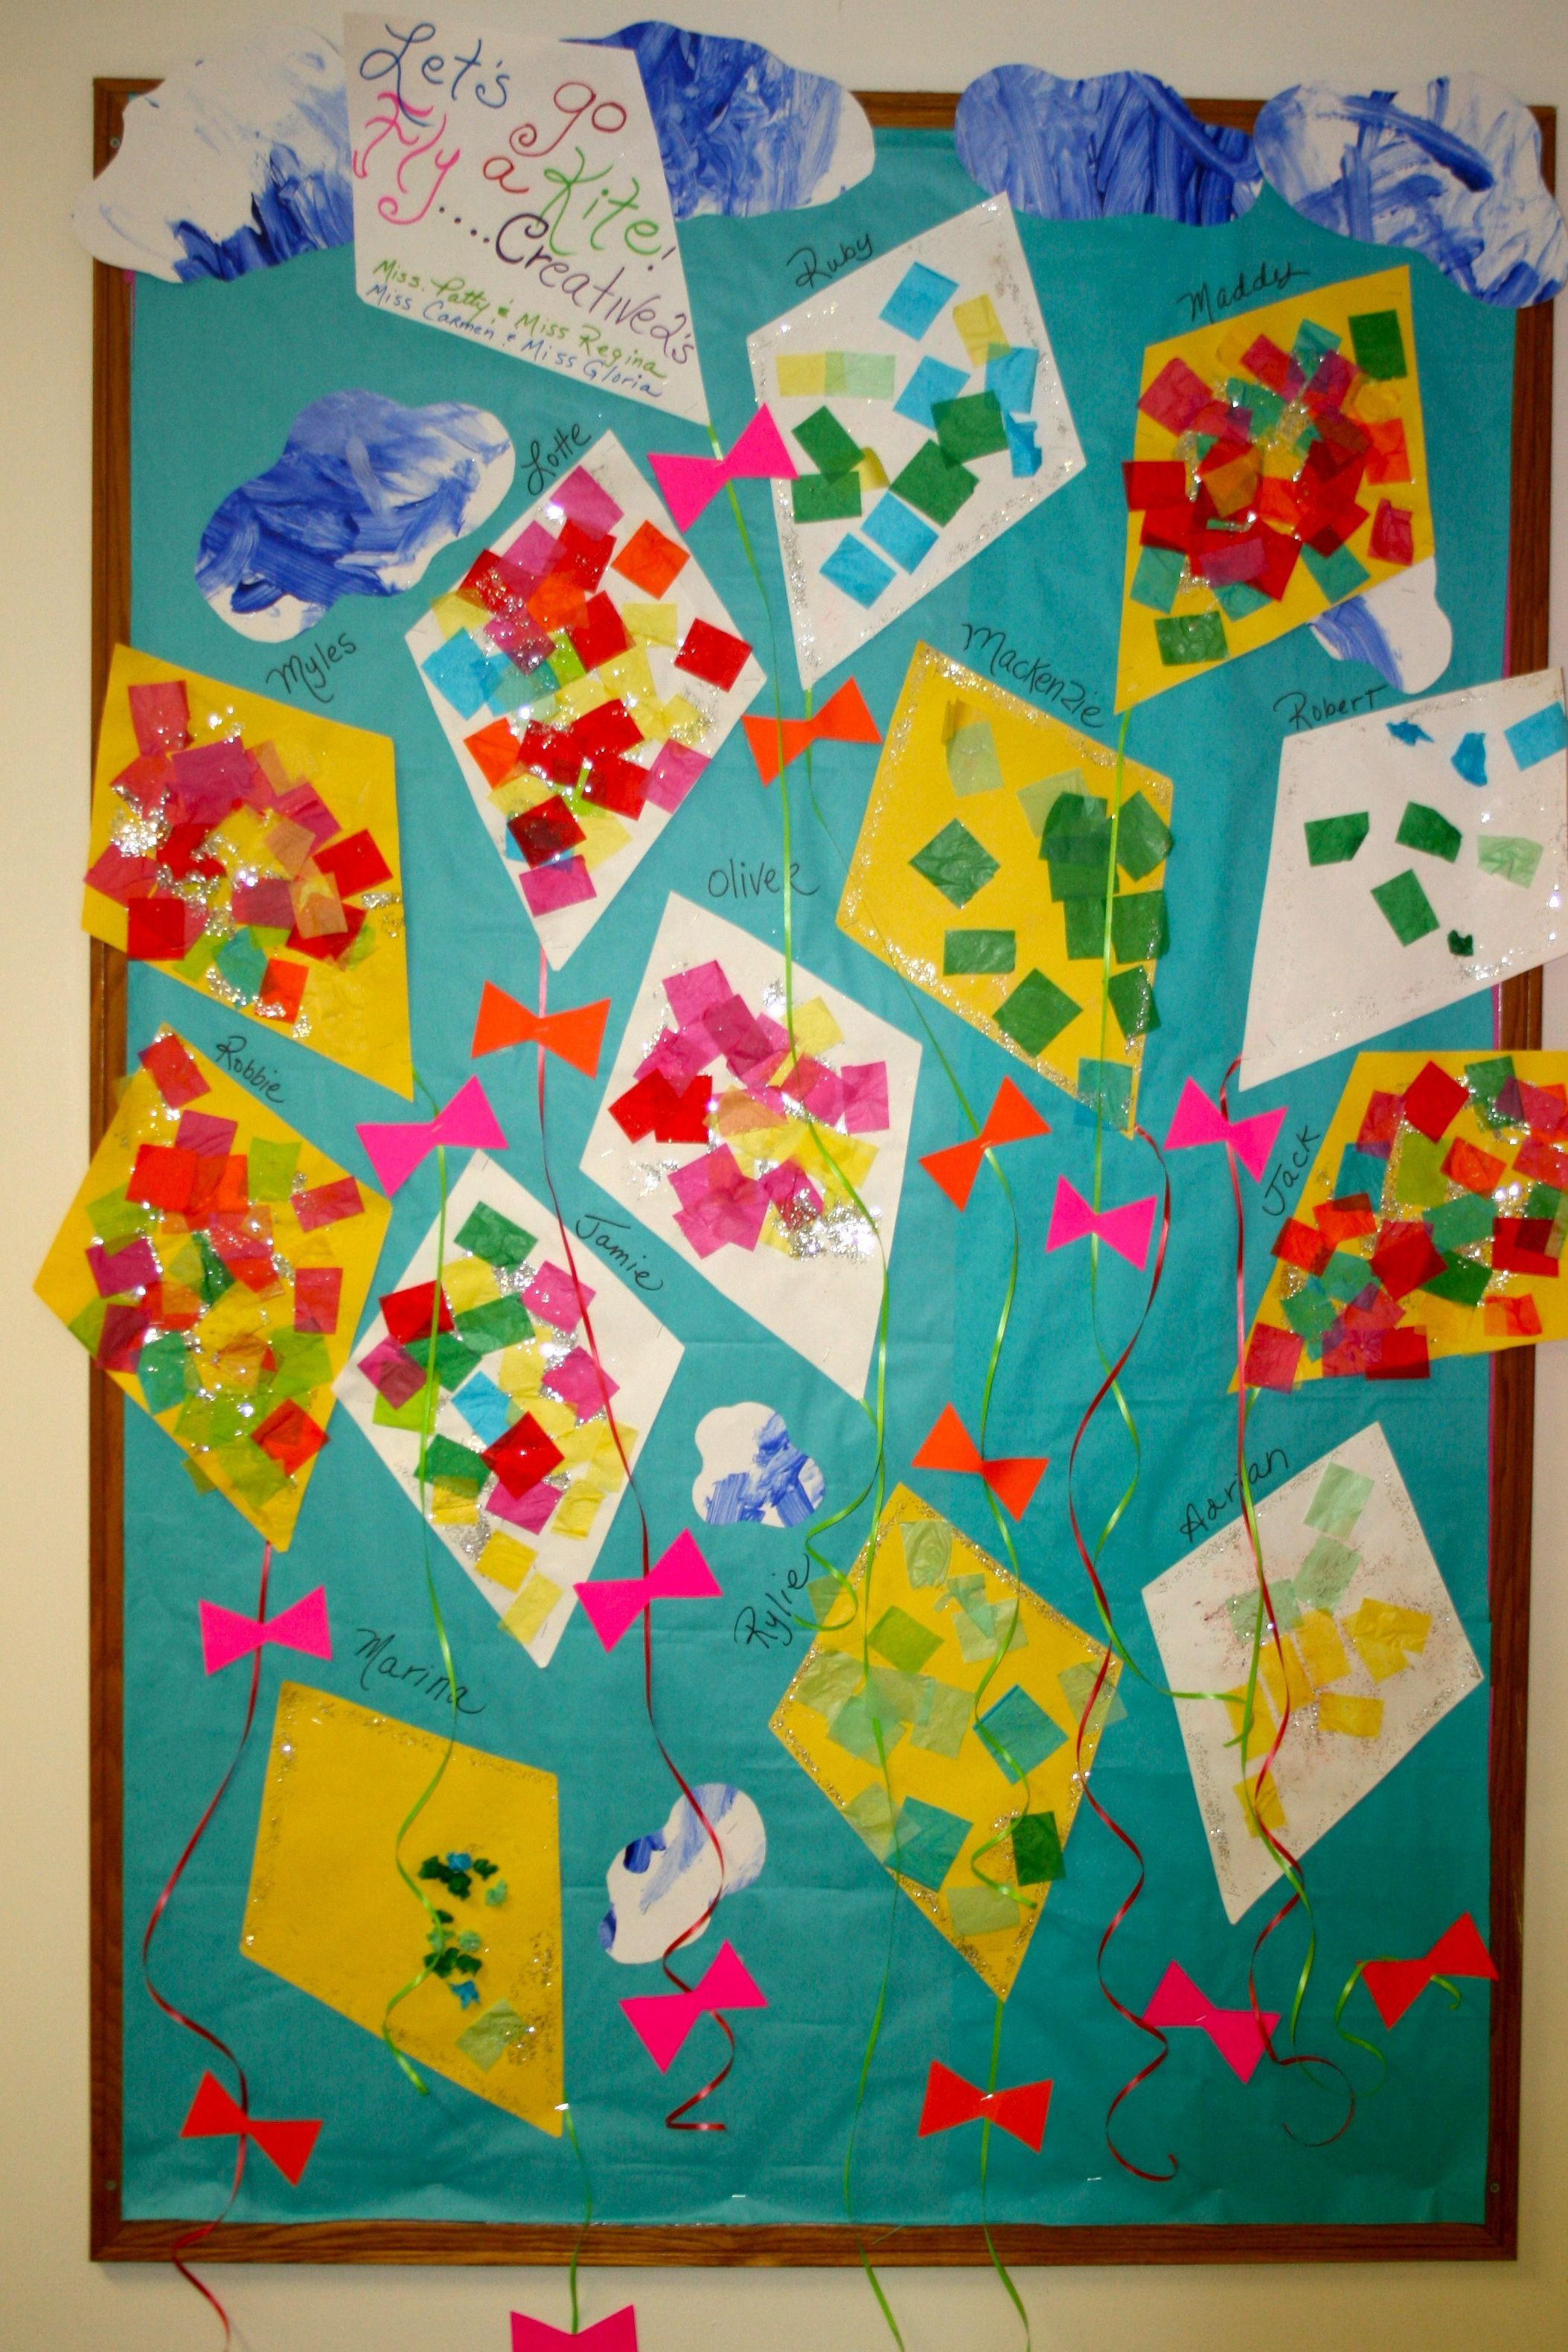 Paper Kite Craft Just Glue Colored Tissue Paper Onto The